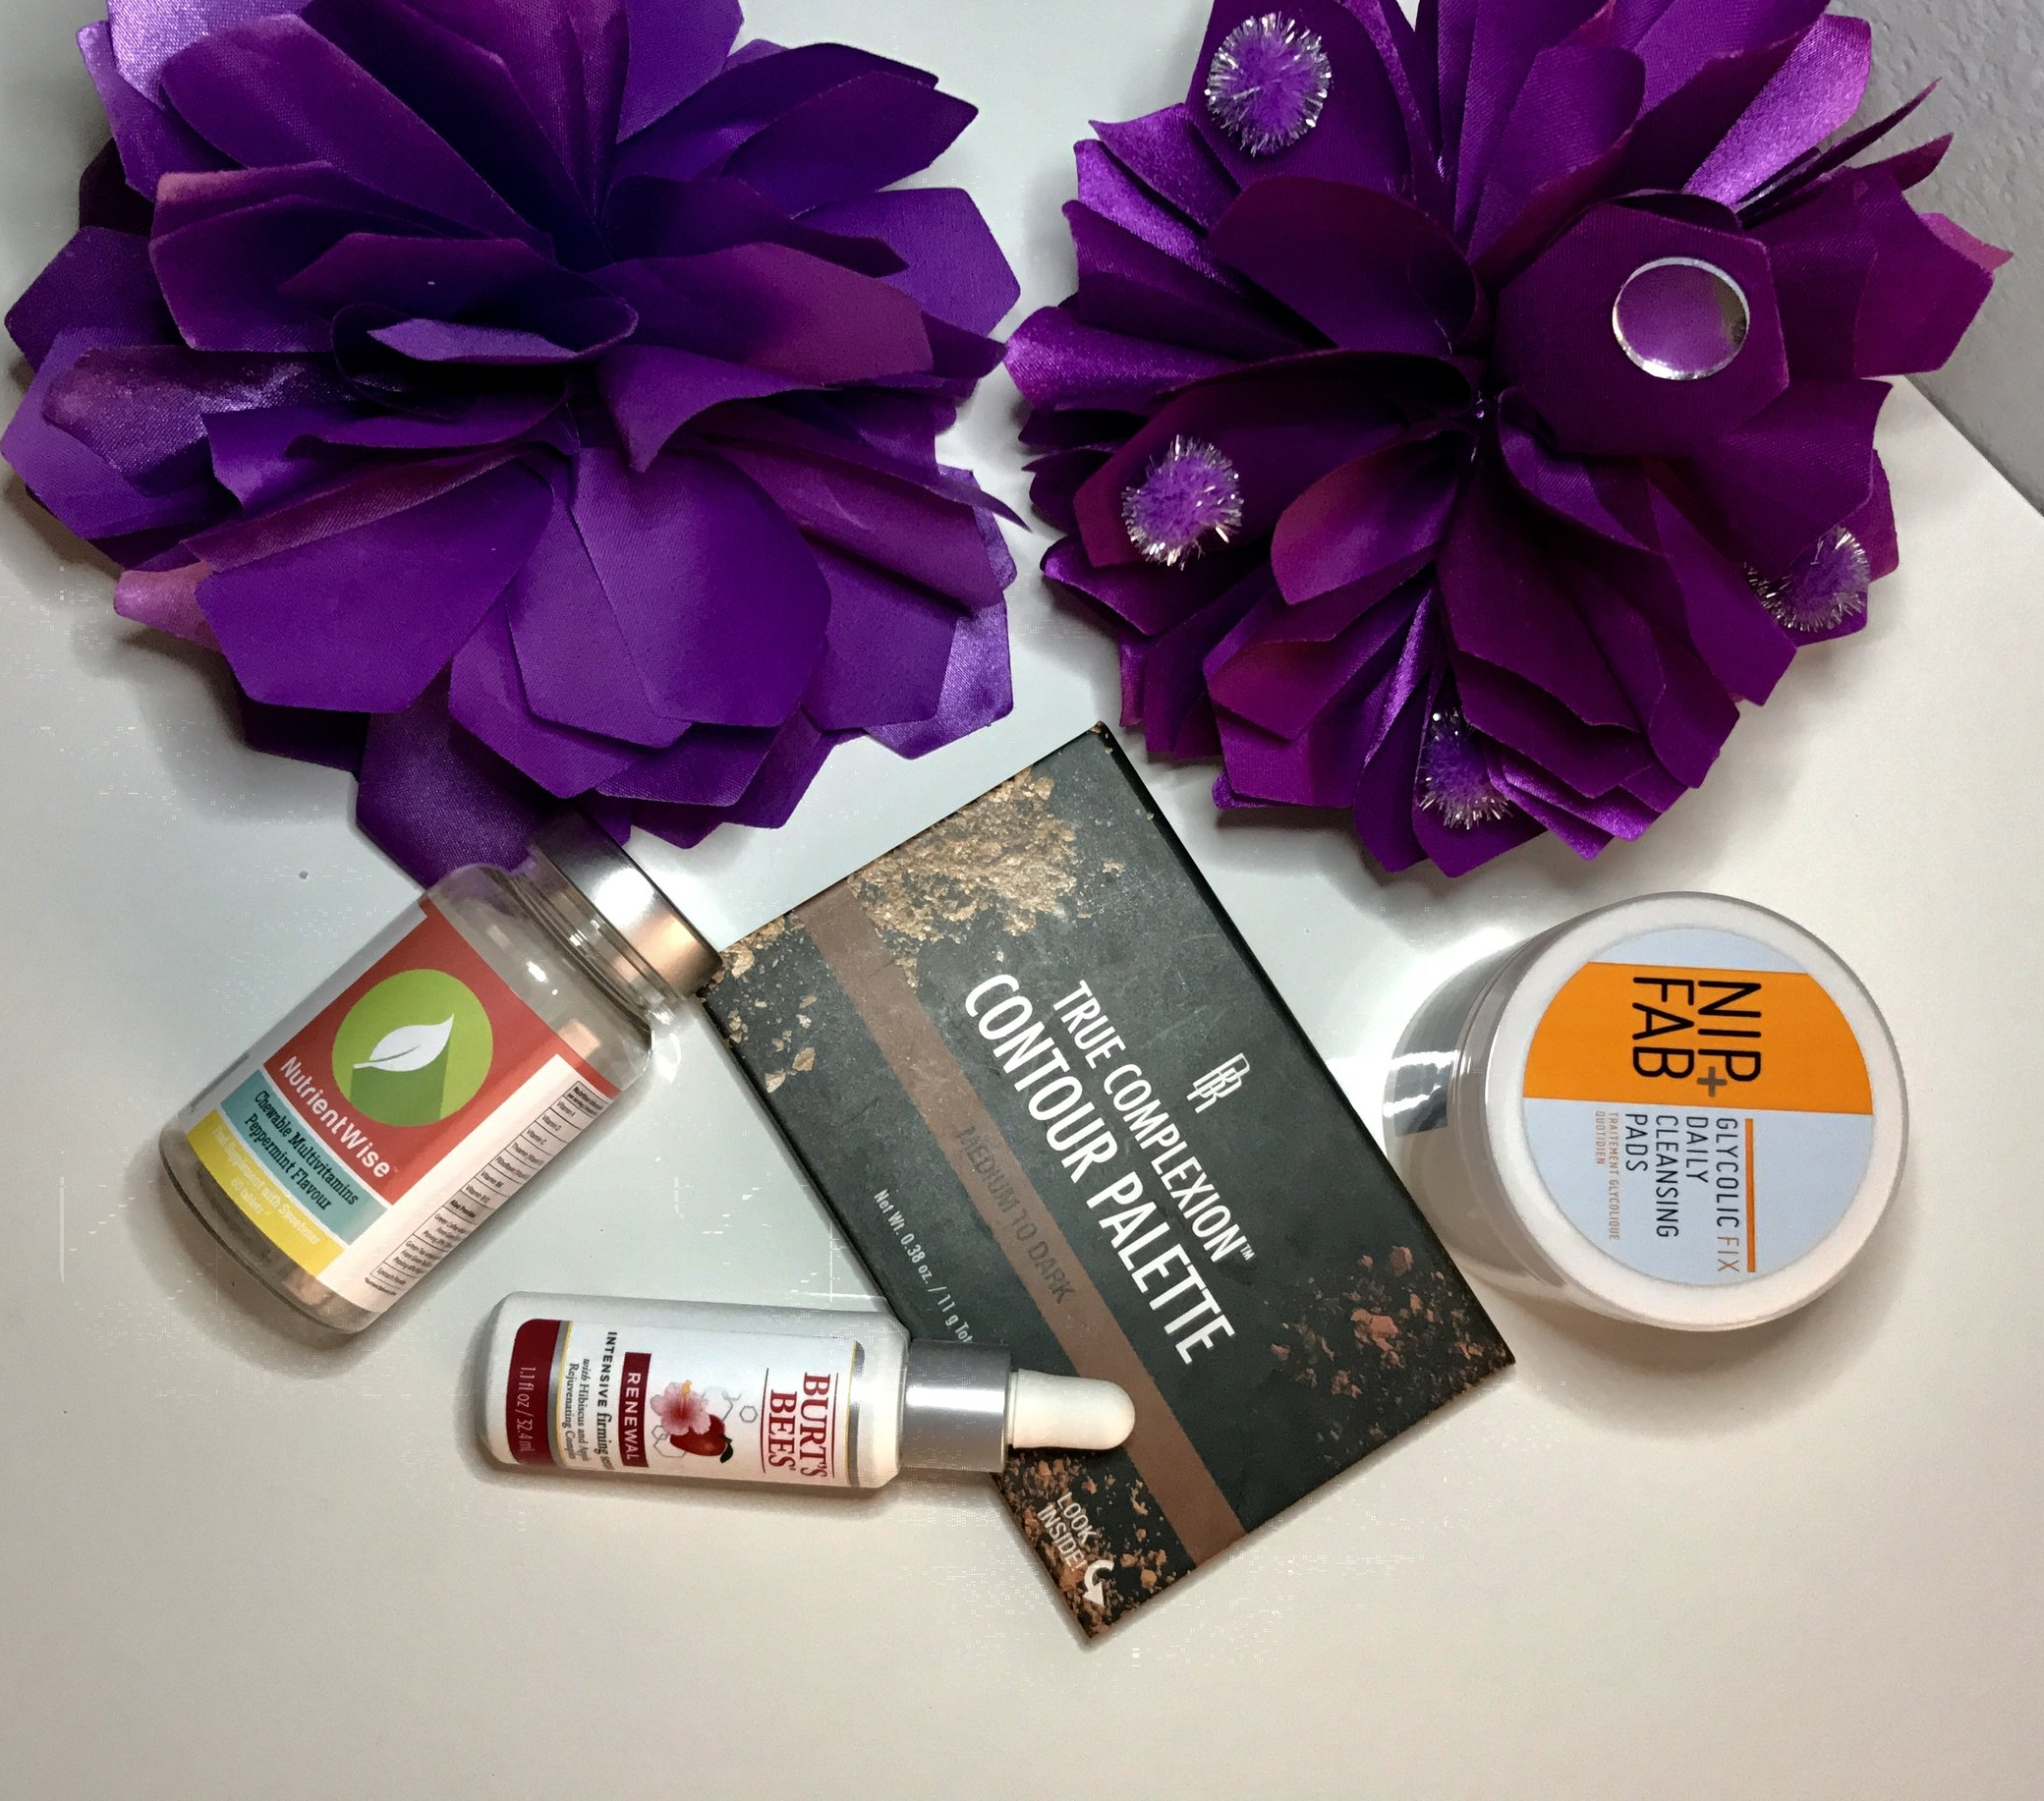 Favorites List:    Nip + Fab Glycolic Fix Daily Cleansing Pads   Burt's Bees intensive Firming Serum   Black Radiance True Complexion Contour Palette   Nutrient Wise chewable multivitamin